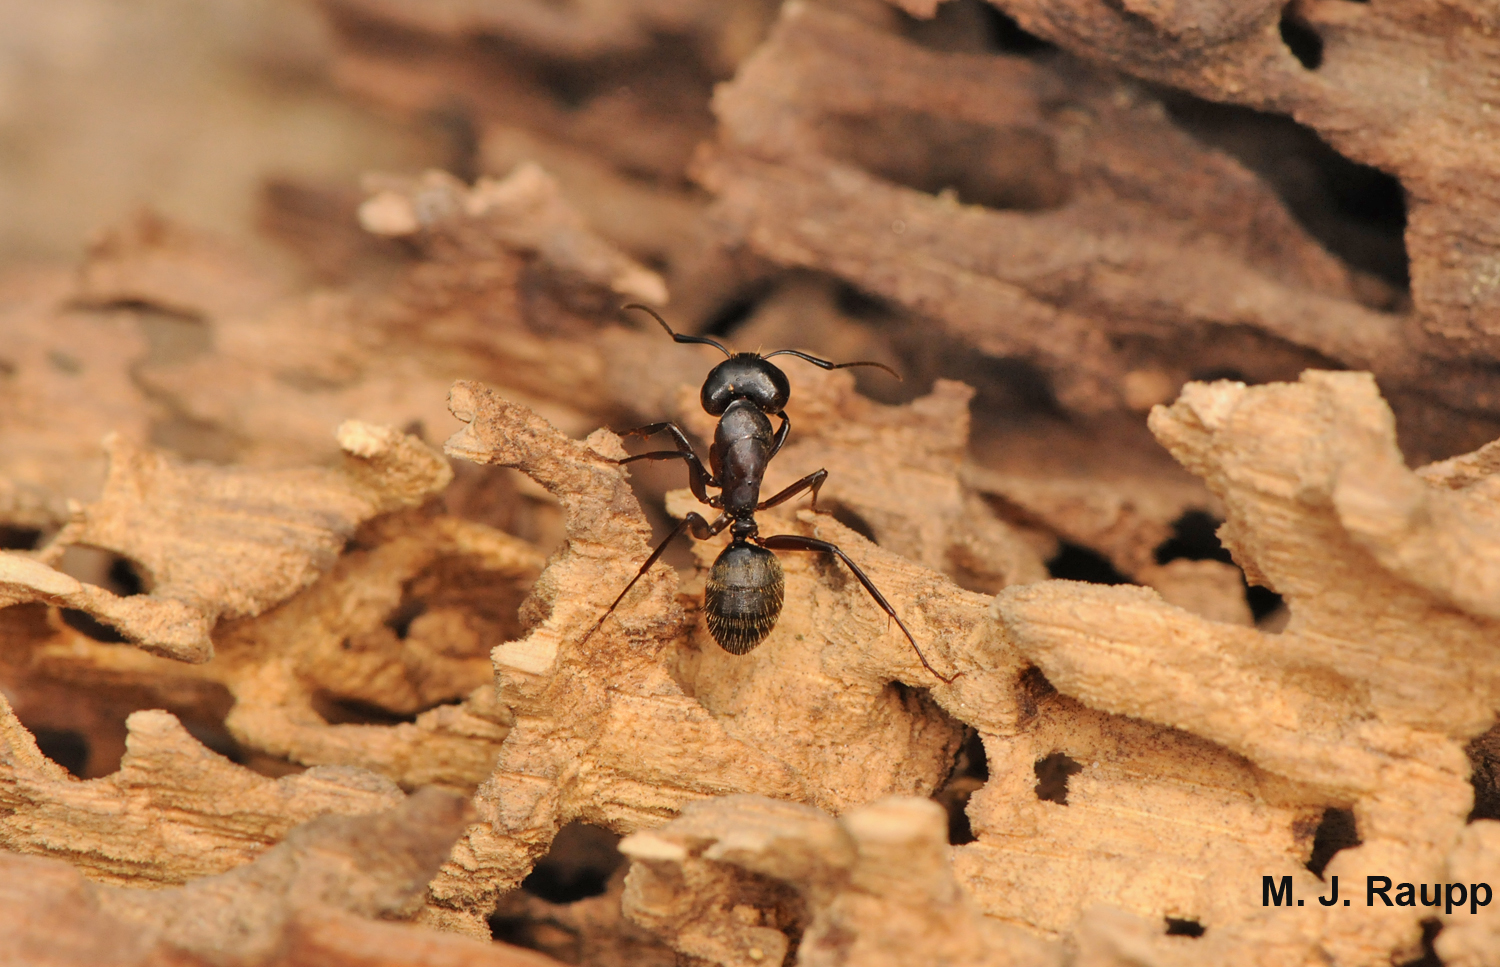 Big Black Ants In The Home Carpenter Ants I Camponotus I Spp Bug Of The Week